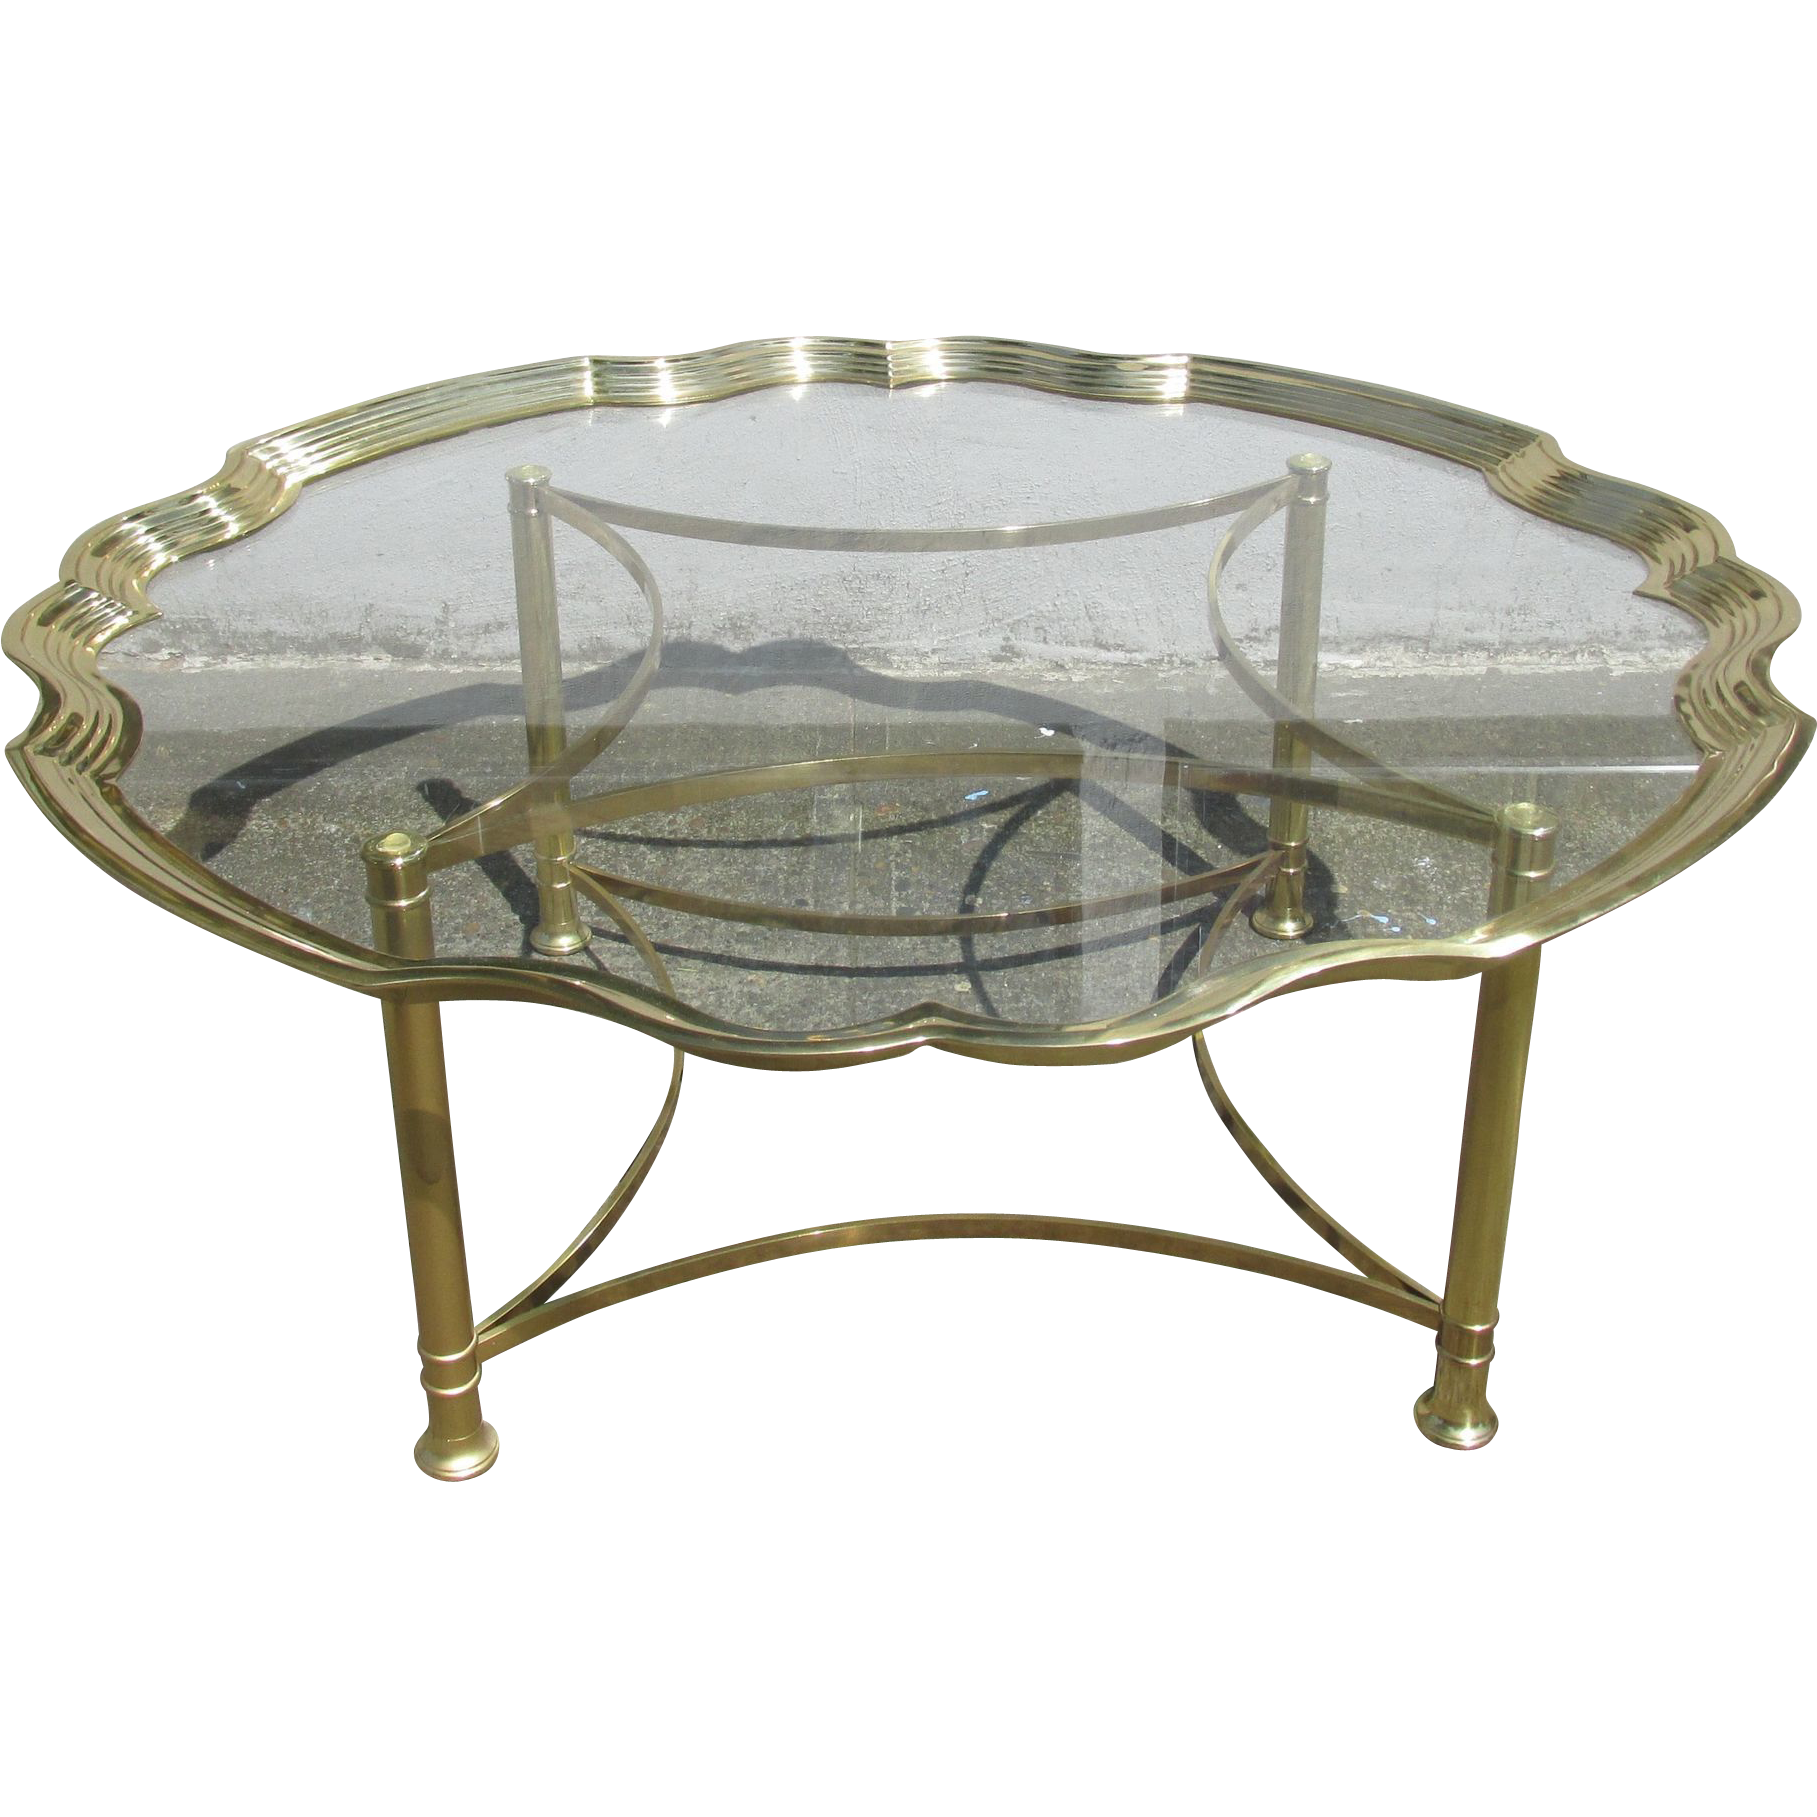 Labarge Cast Brass And Glass Coffee/cocktail Table